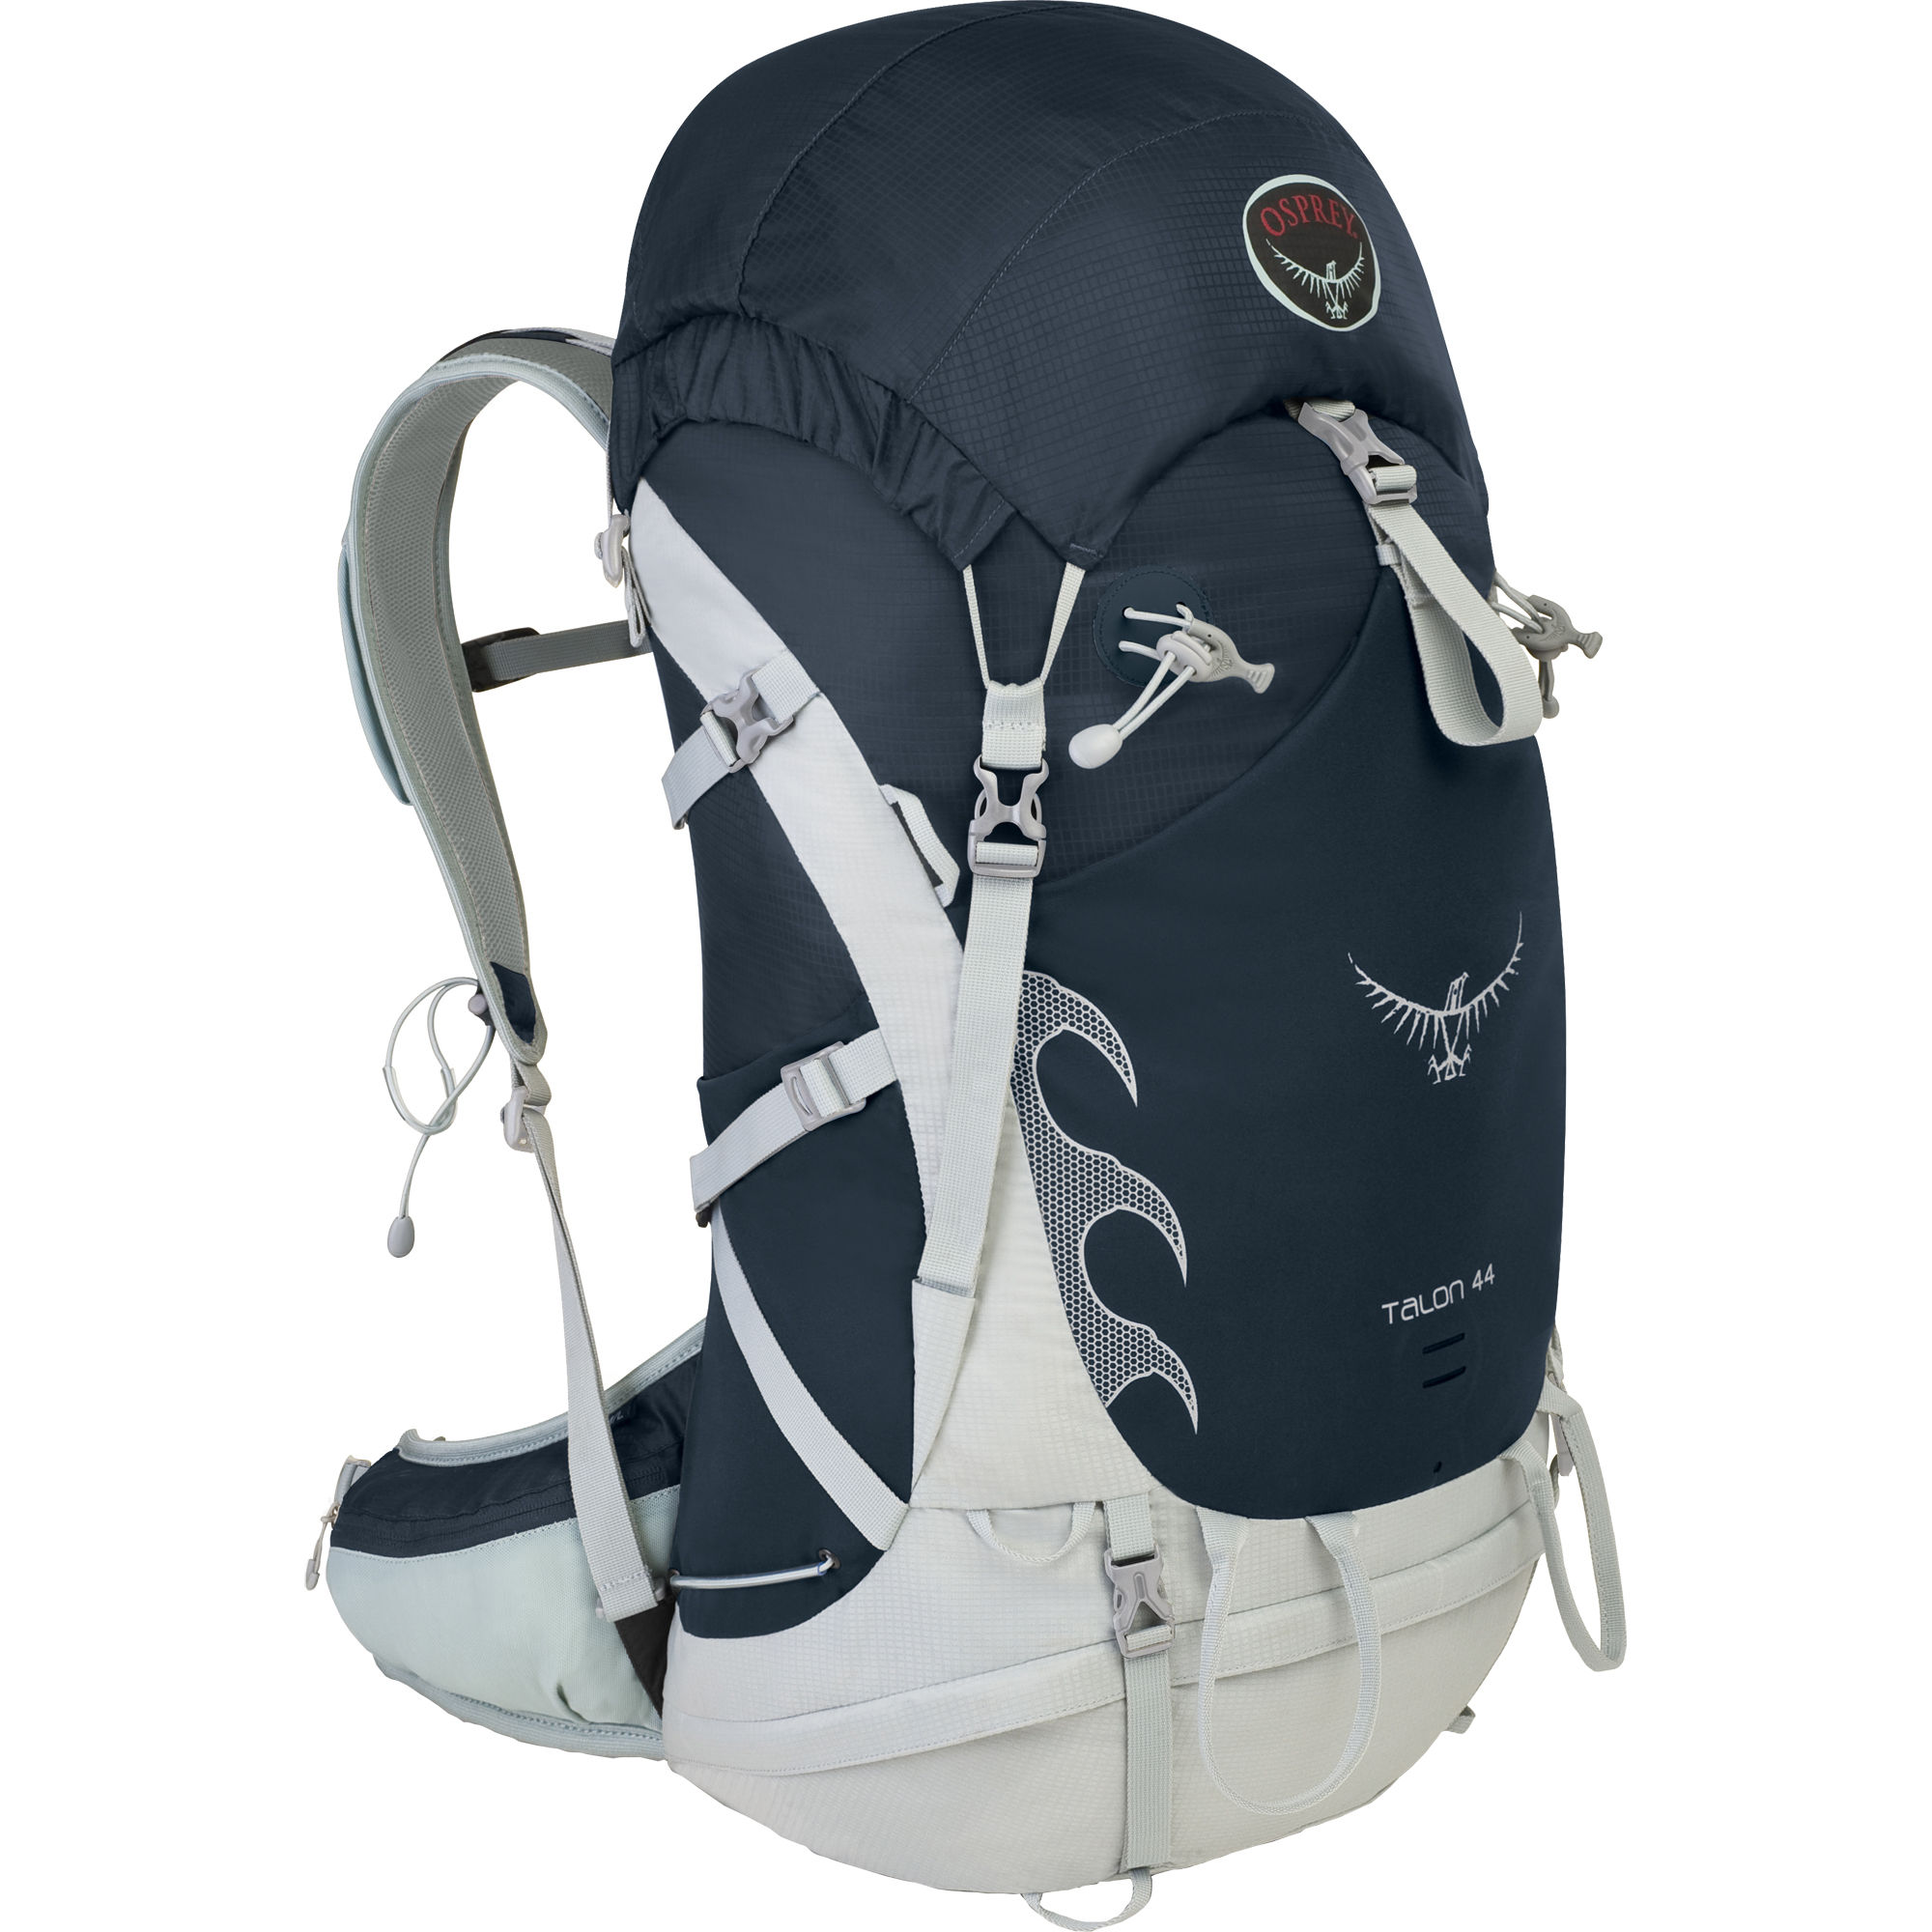 Osprey talon 44 medium Backpack